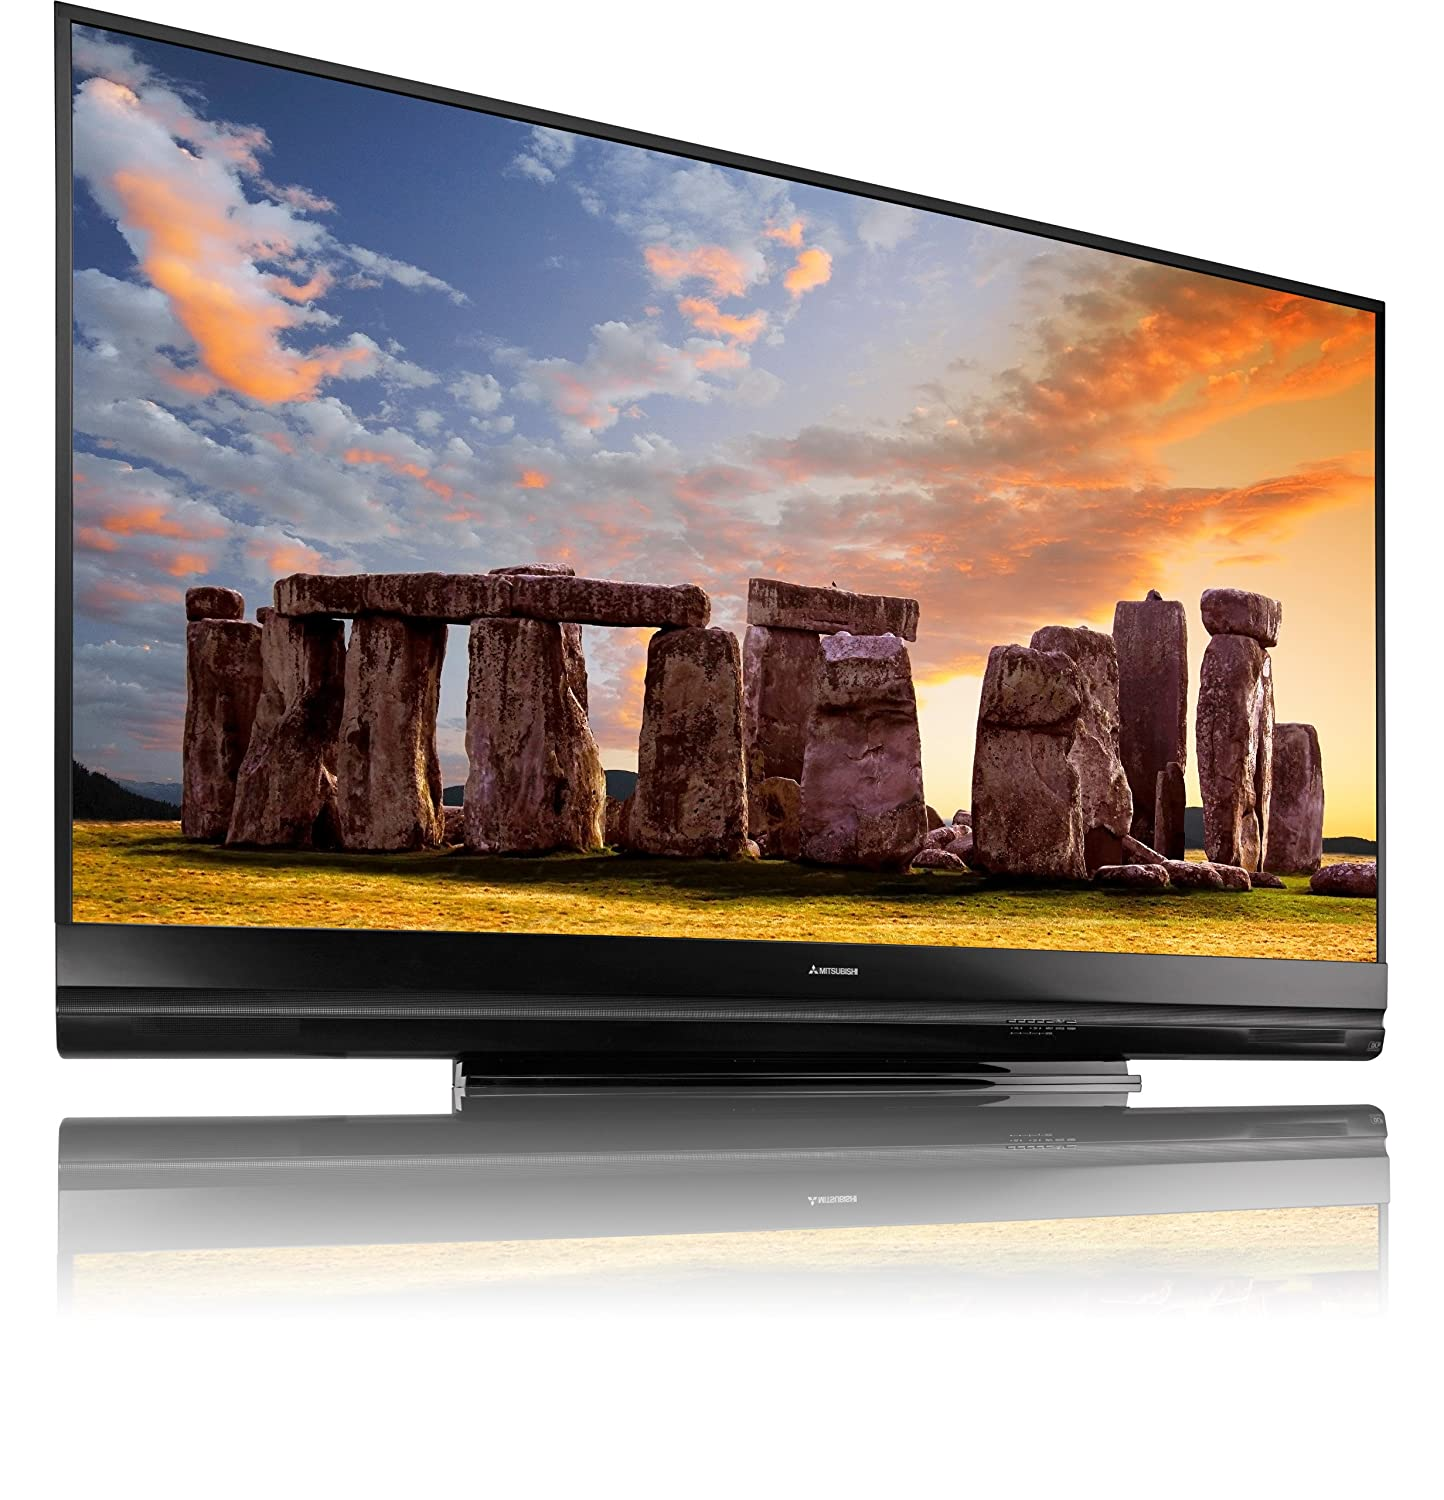 91e%2BD50oeqL._SL1500_ amazon com mitsubishi wd 82742 82 inch 3d dlp home cinema hdtv  at cos-gaming.co